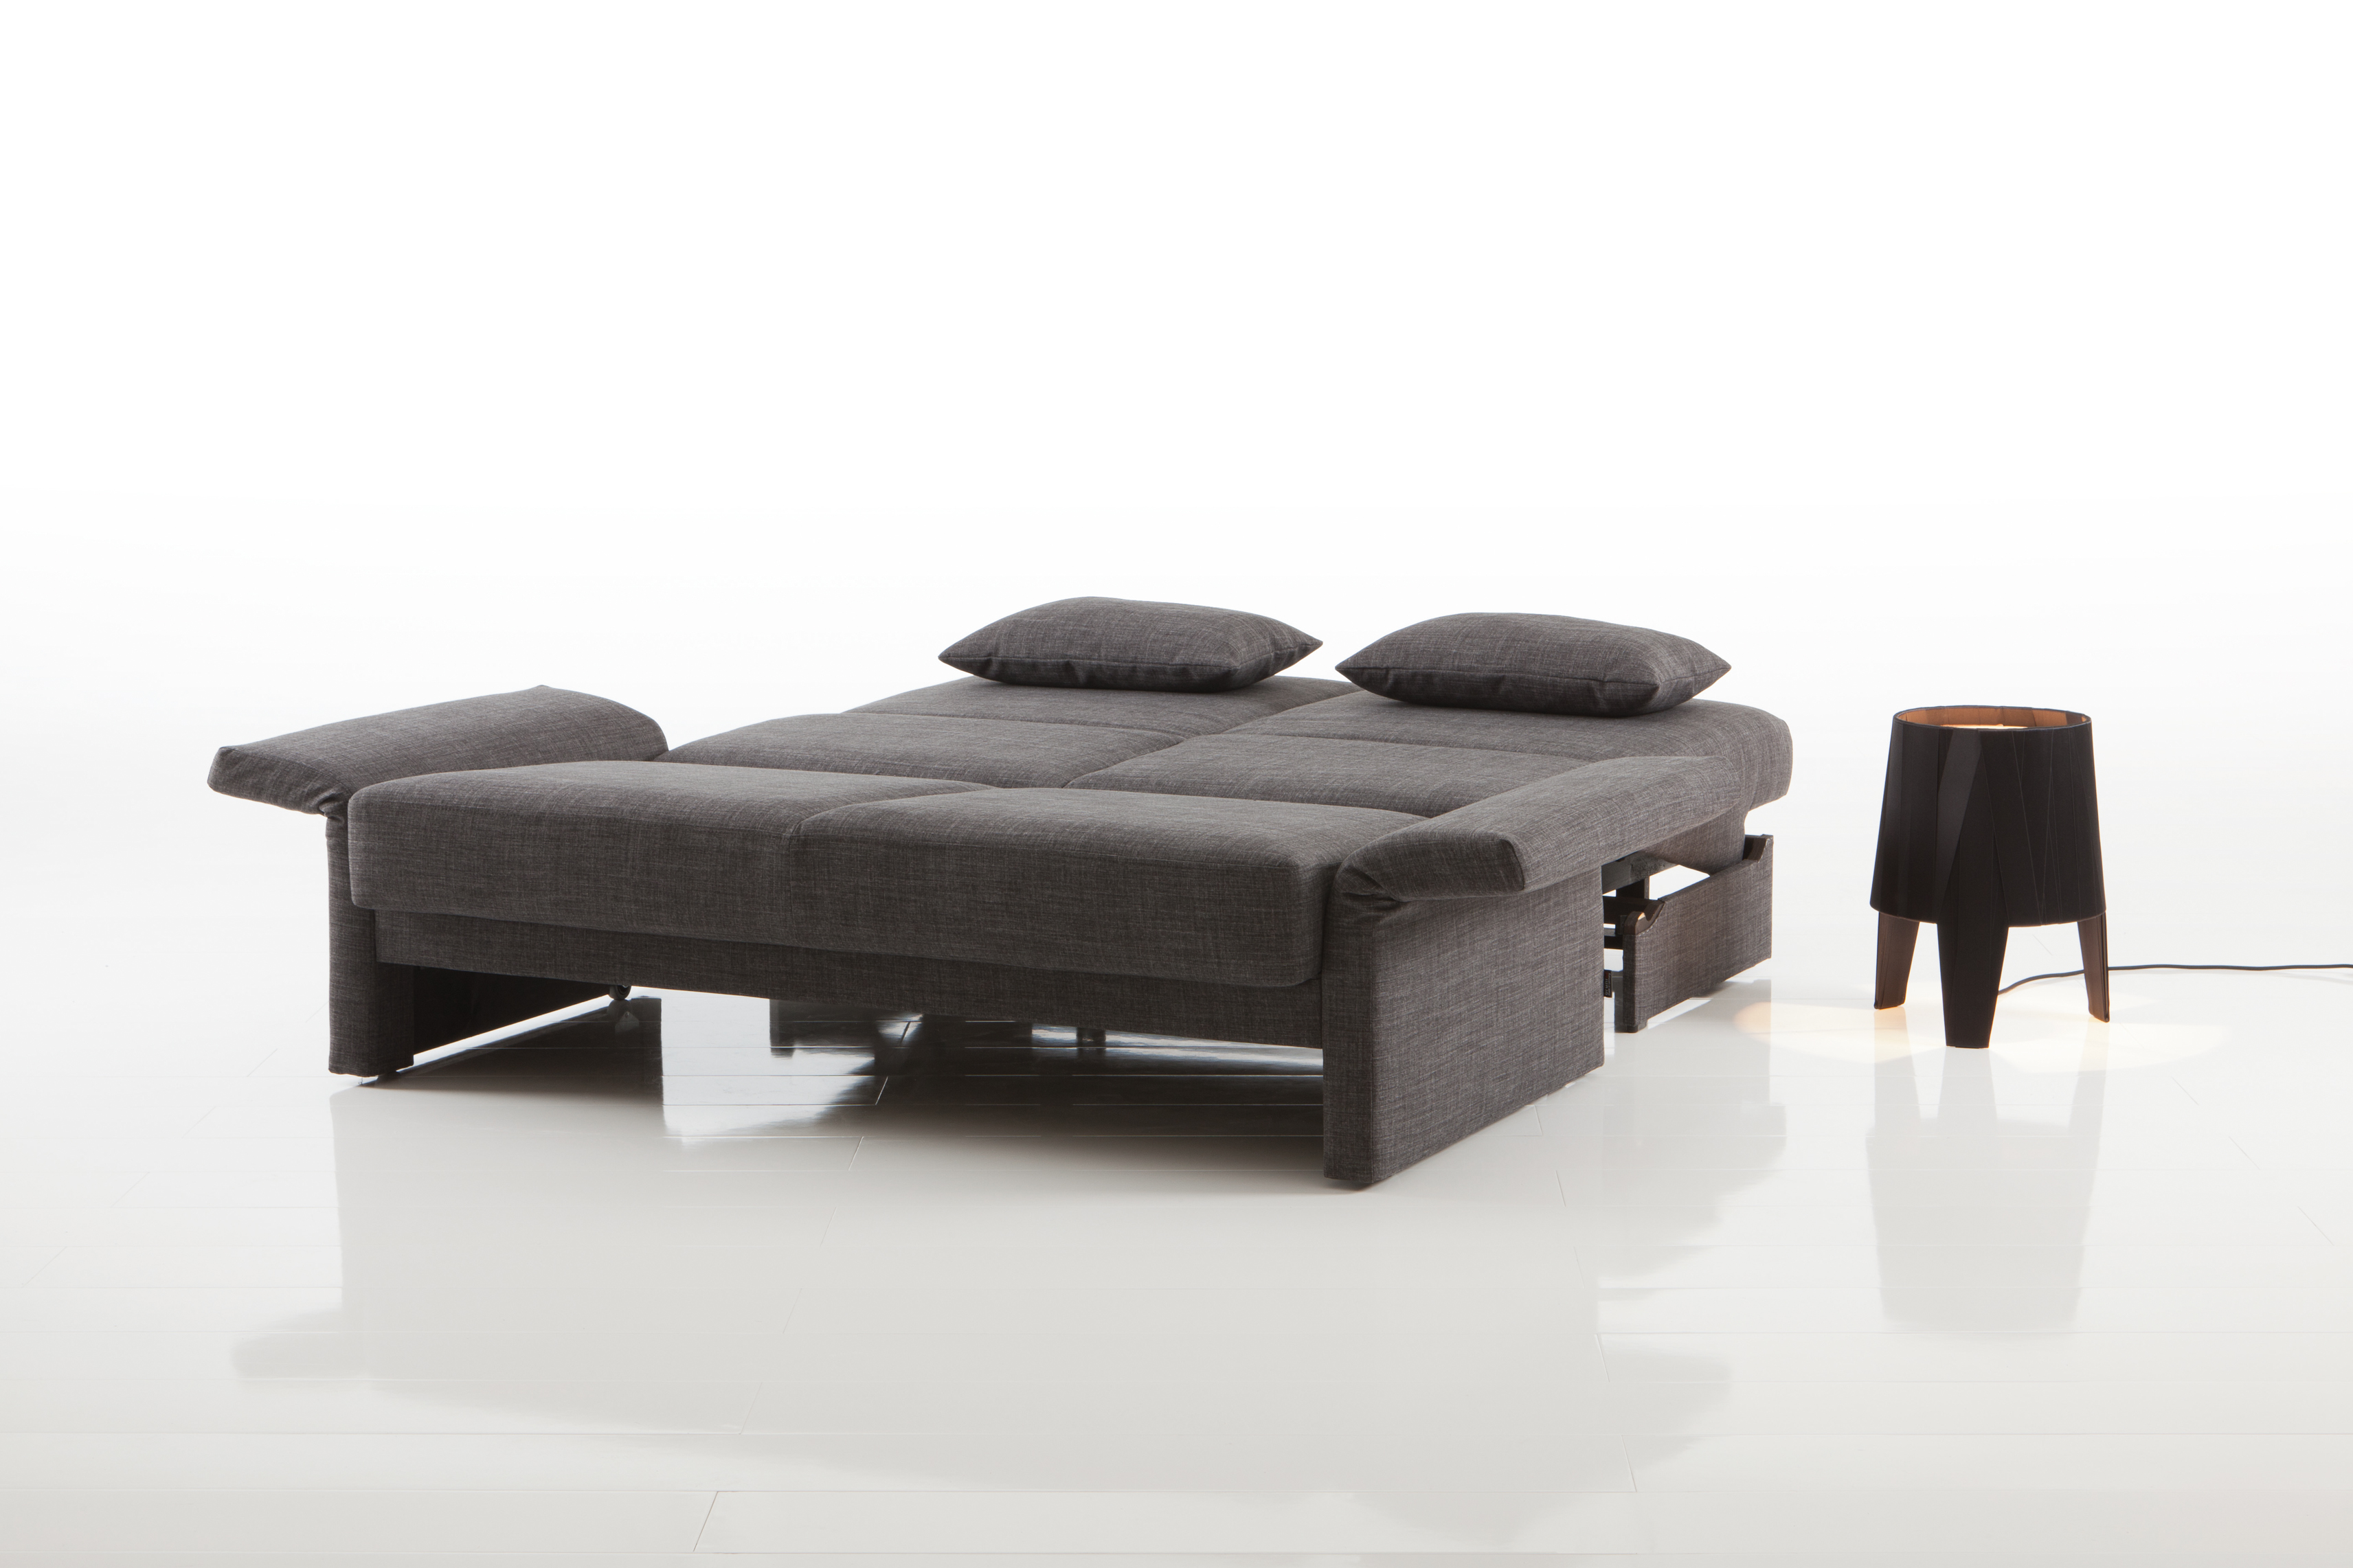 schlafsofa cara von br hl sippold. Black Bedroom Furniture Sets. Home Design Ideas